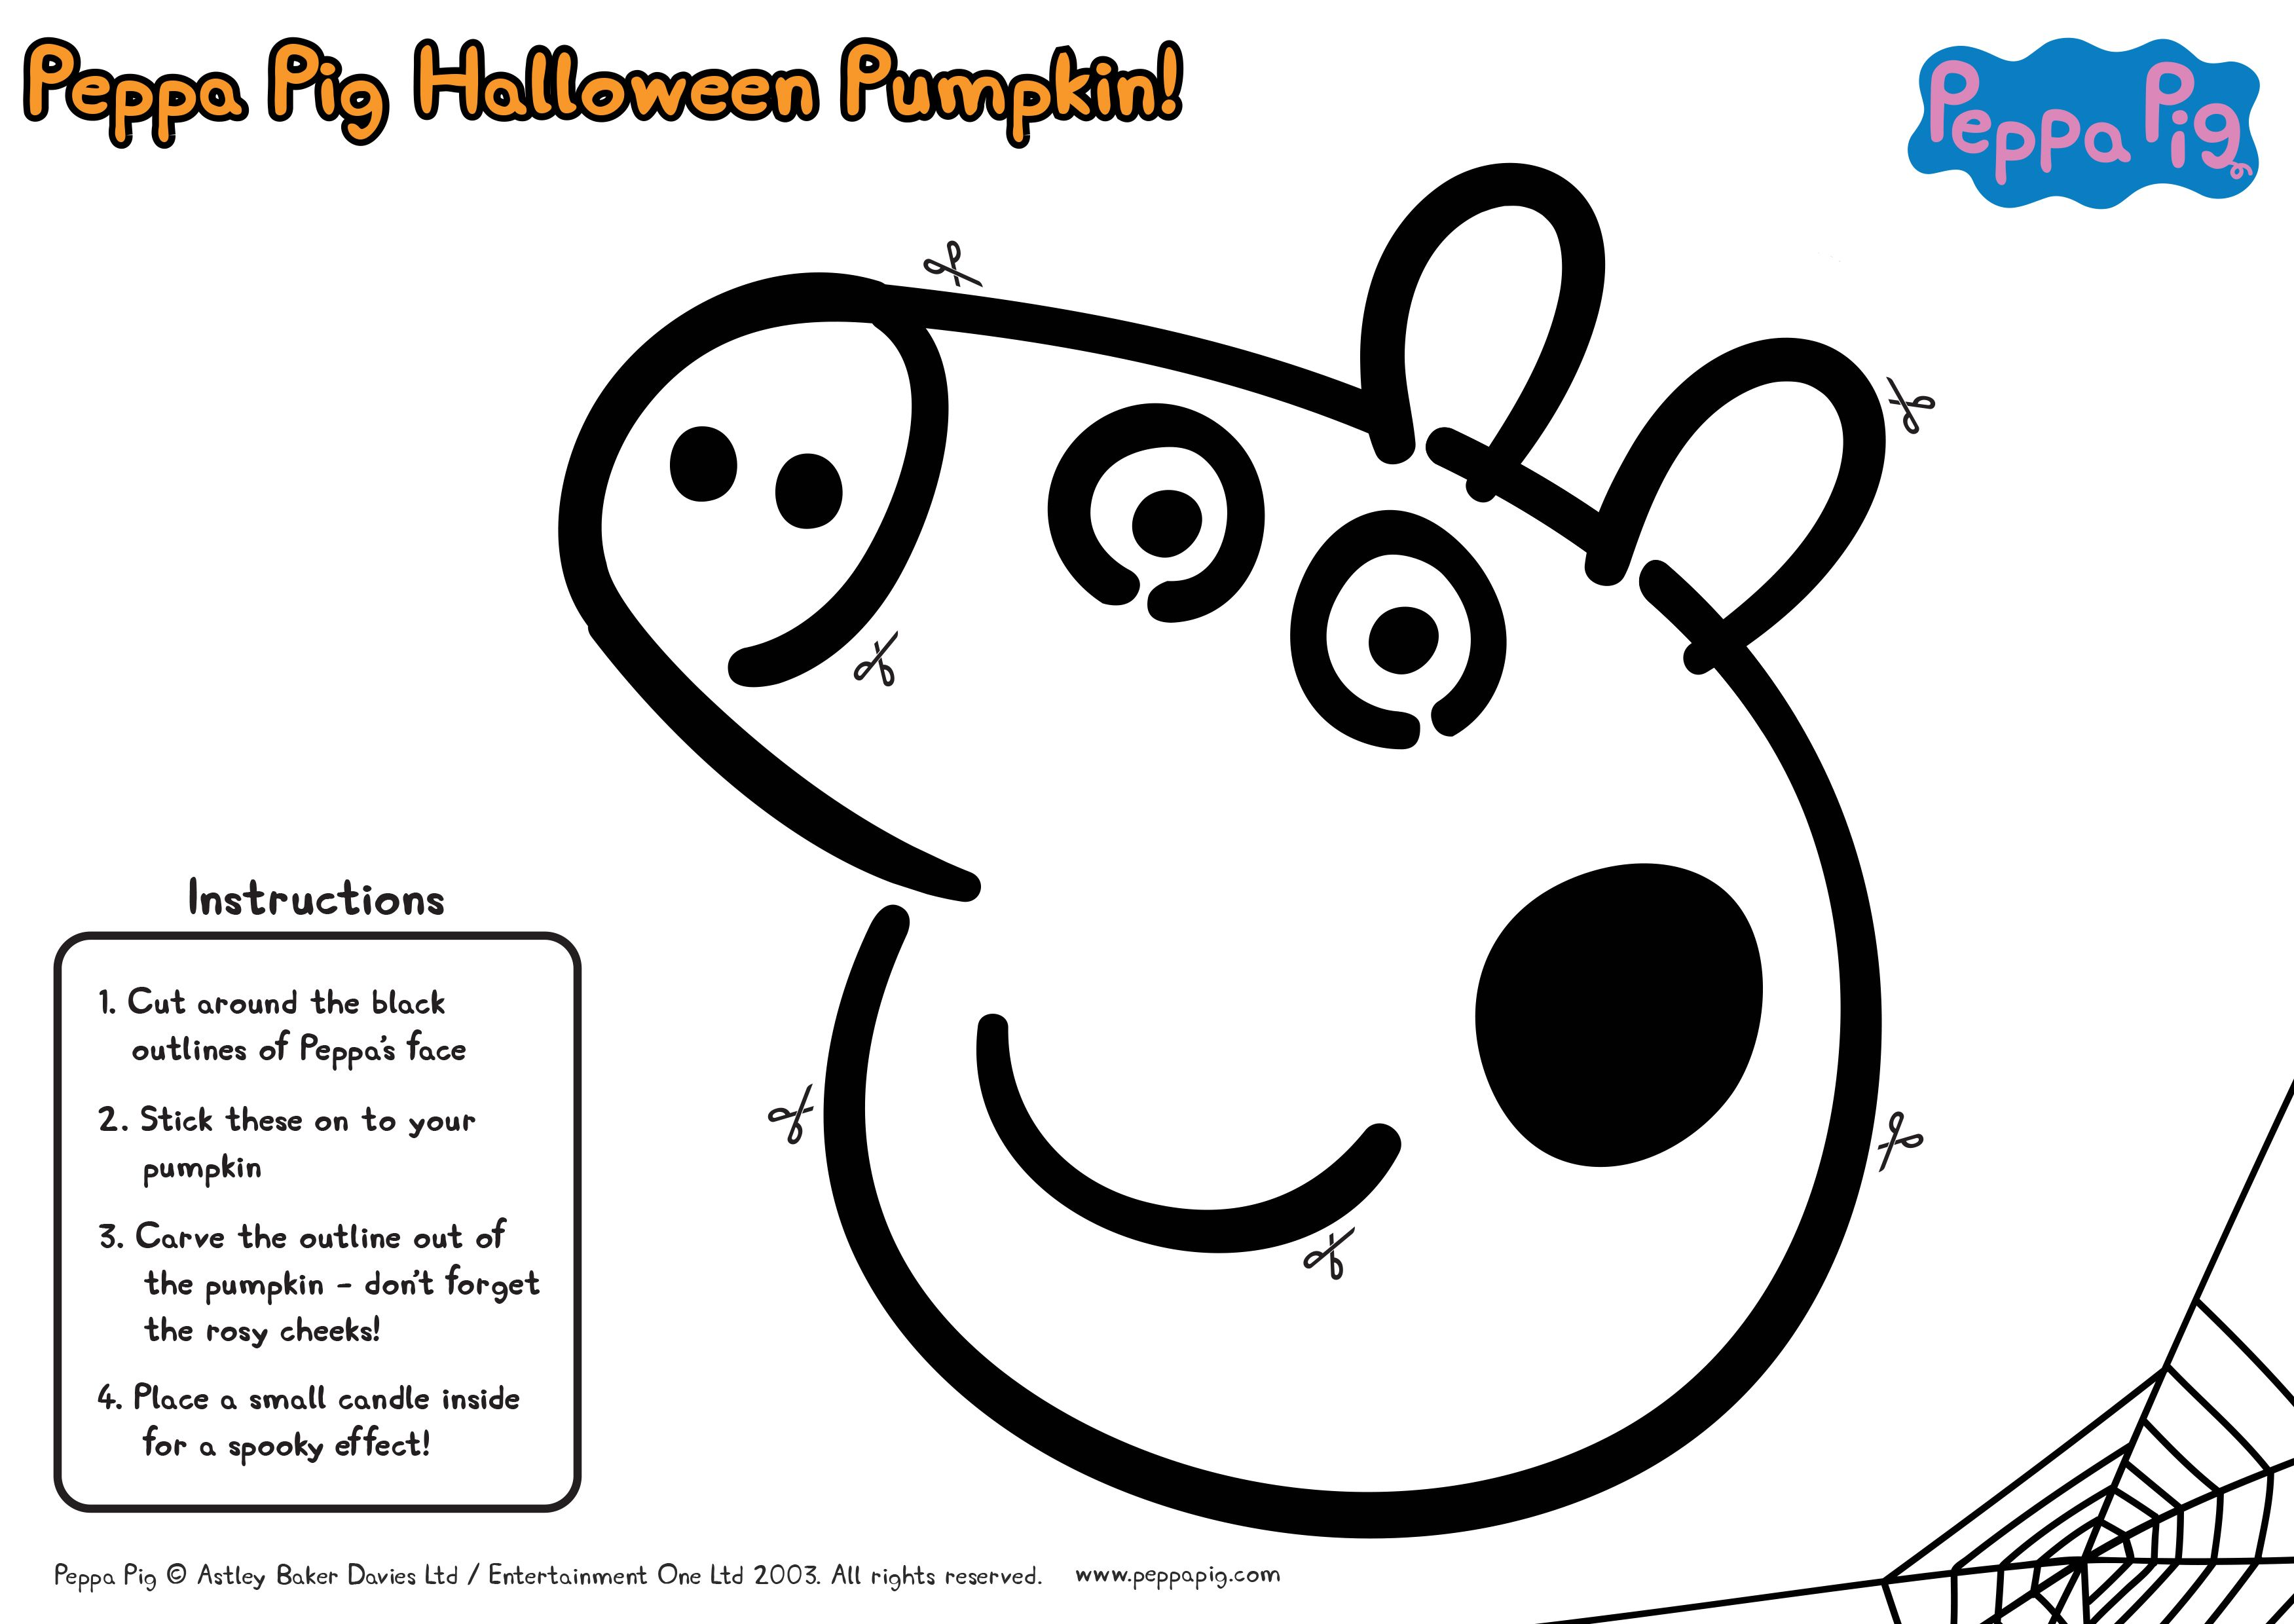 You Too Can Make Your Very Own Peppa Pumpkin For Your